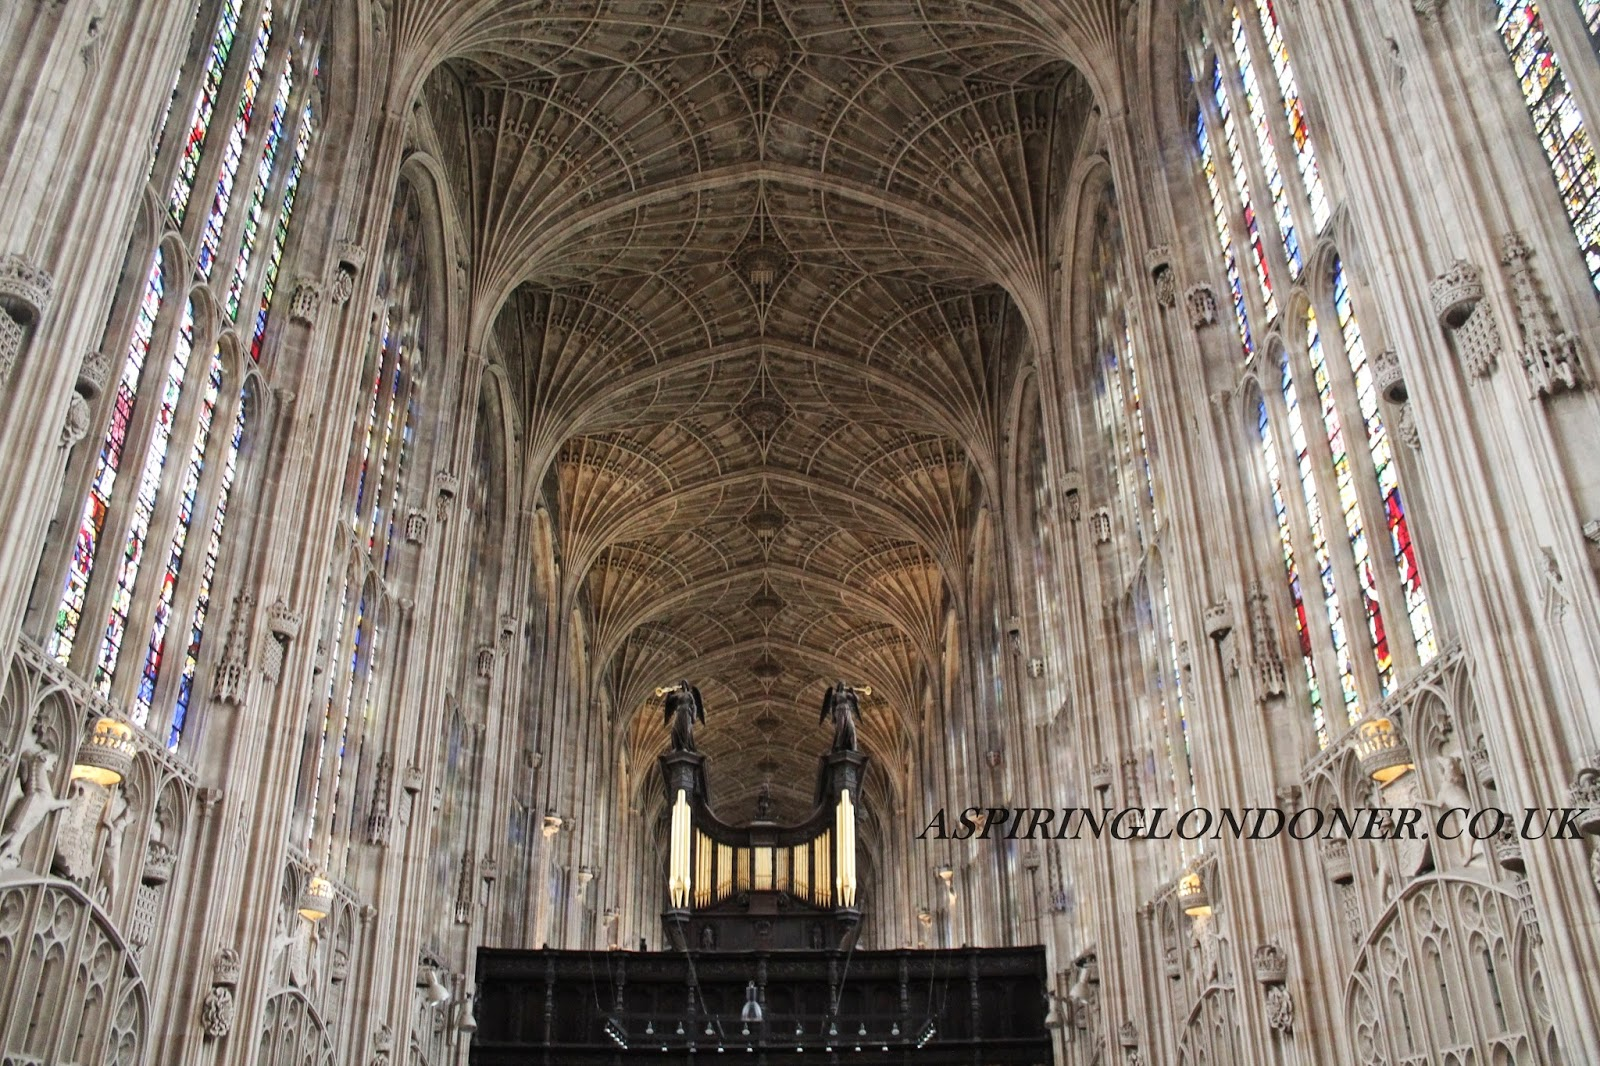 King's College Chapel, University of Cambridge - Aspiring Londoner